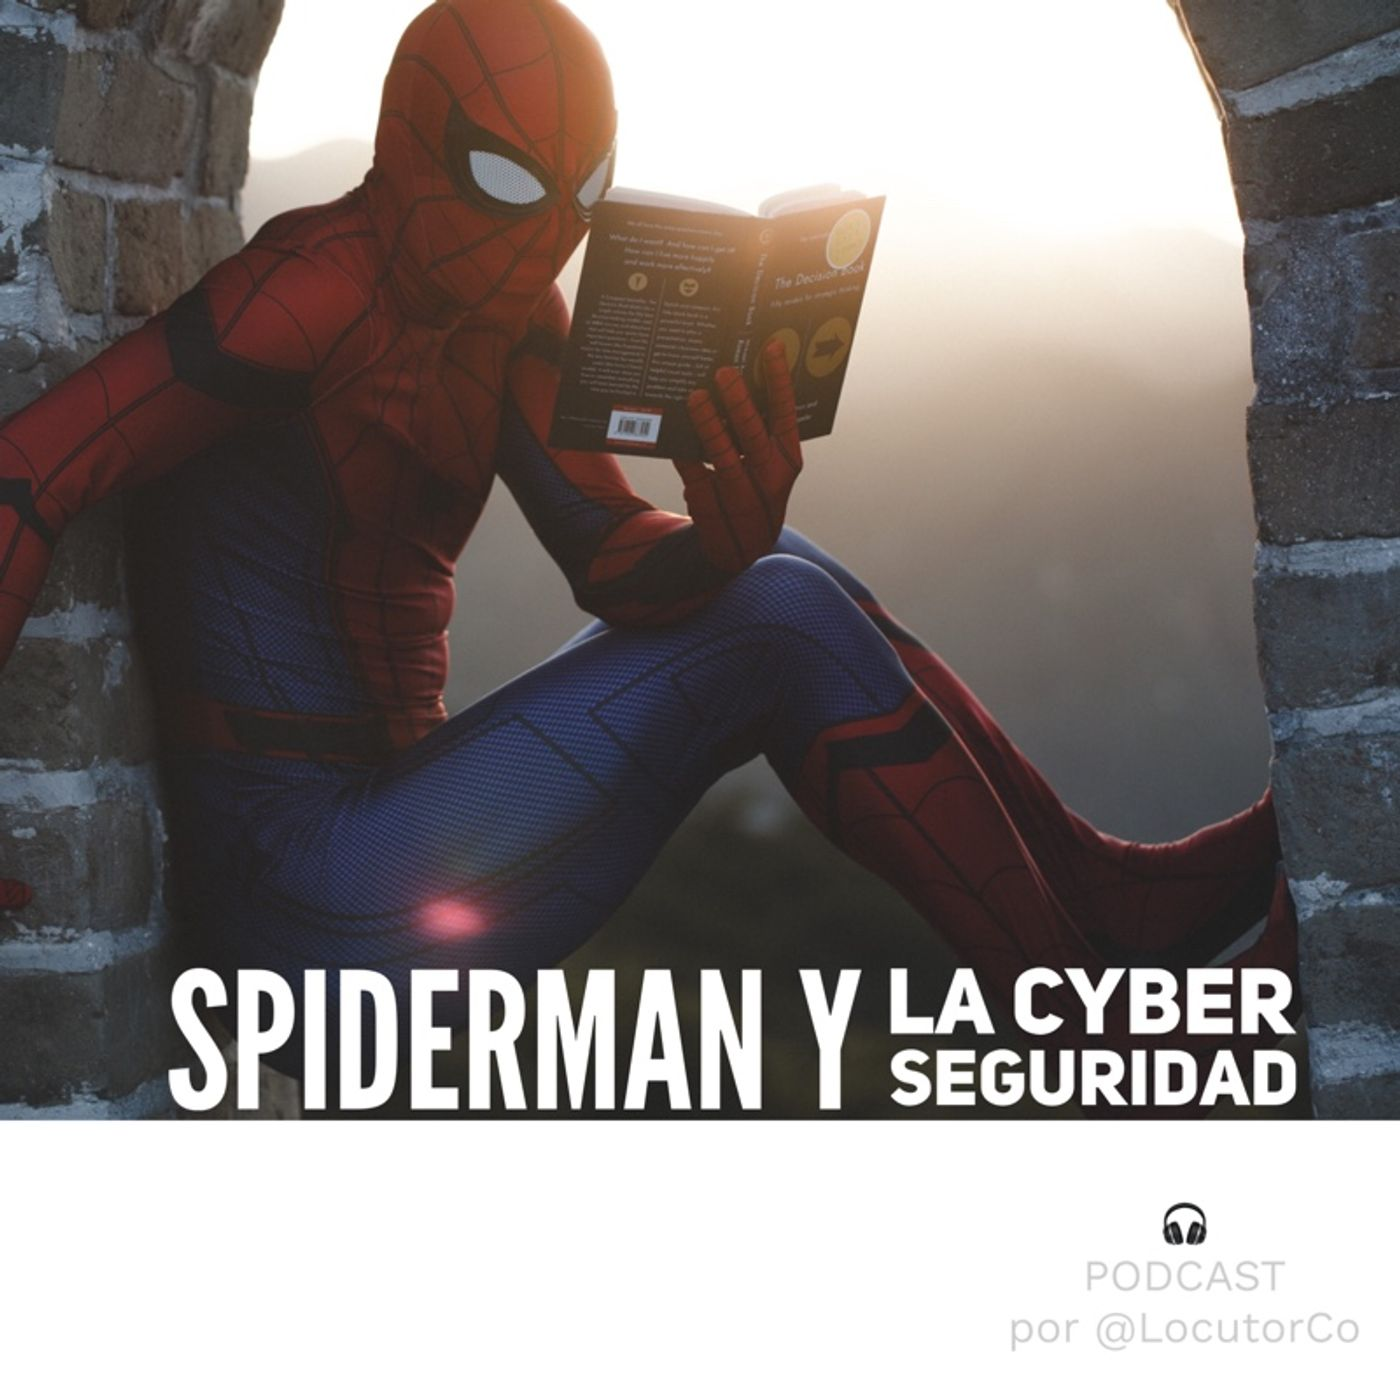 Spiderman y la ciberseguridad